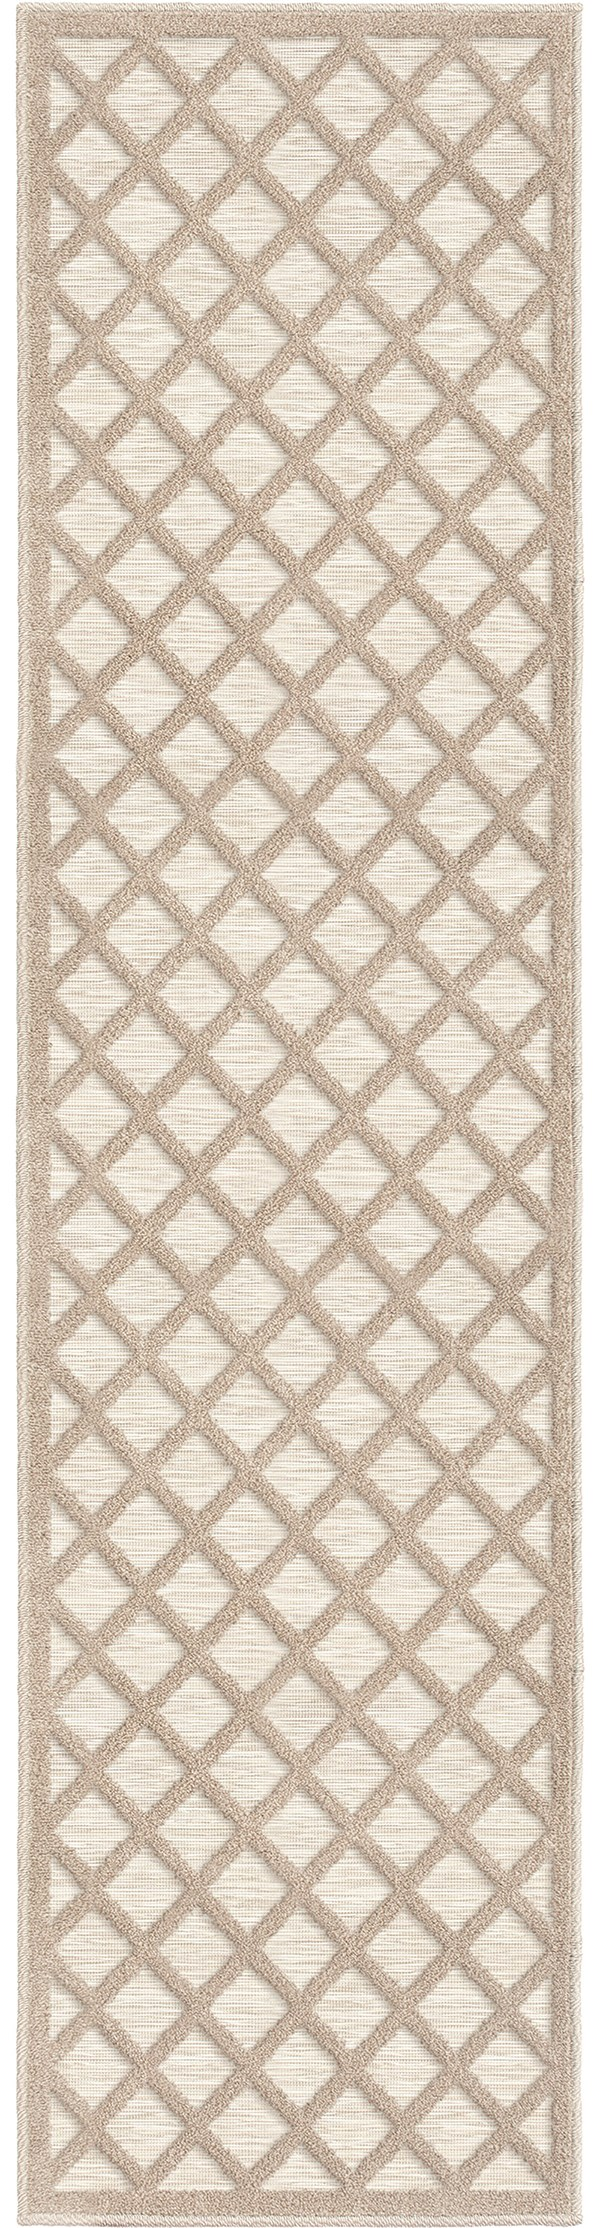 Driftwood Outdoor / Indoor Area Rug